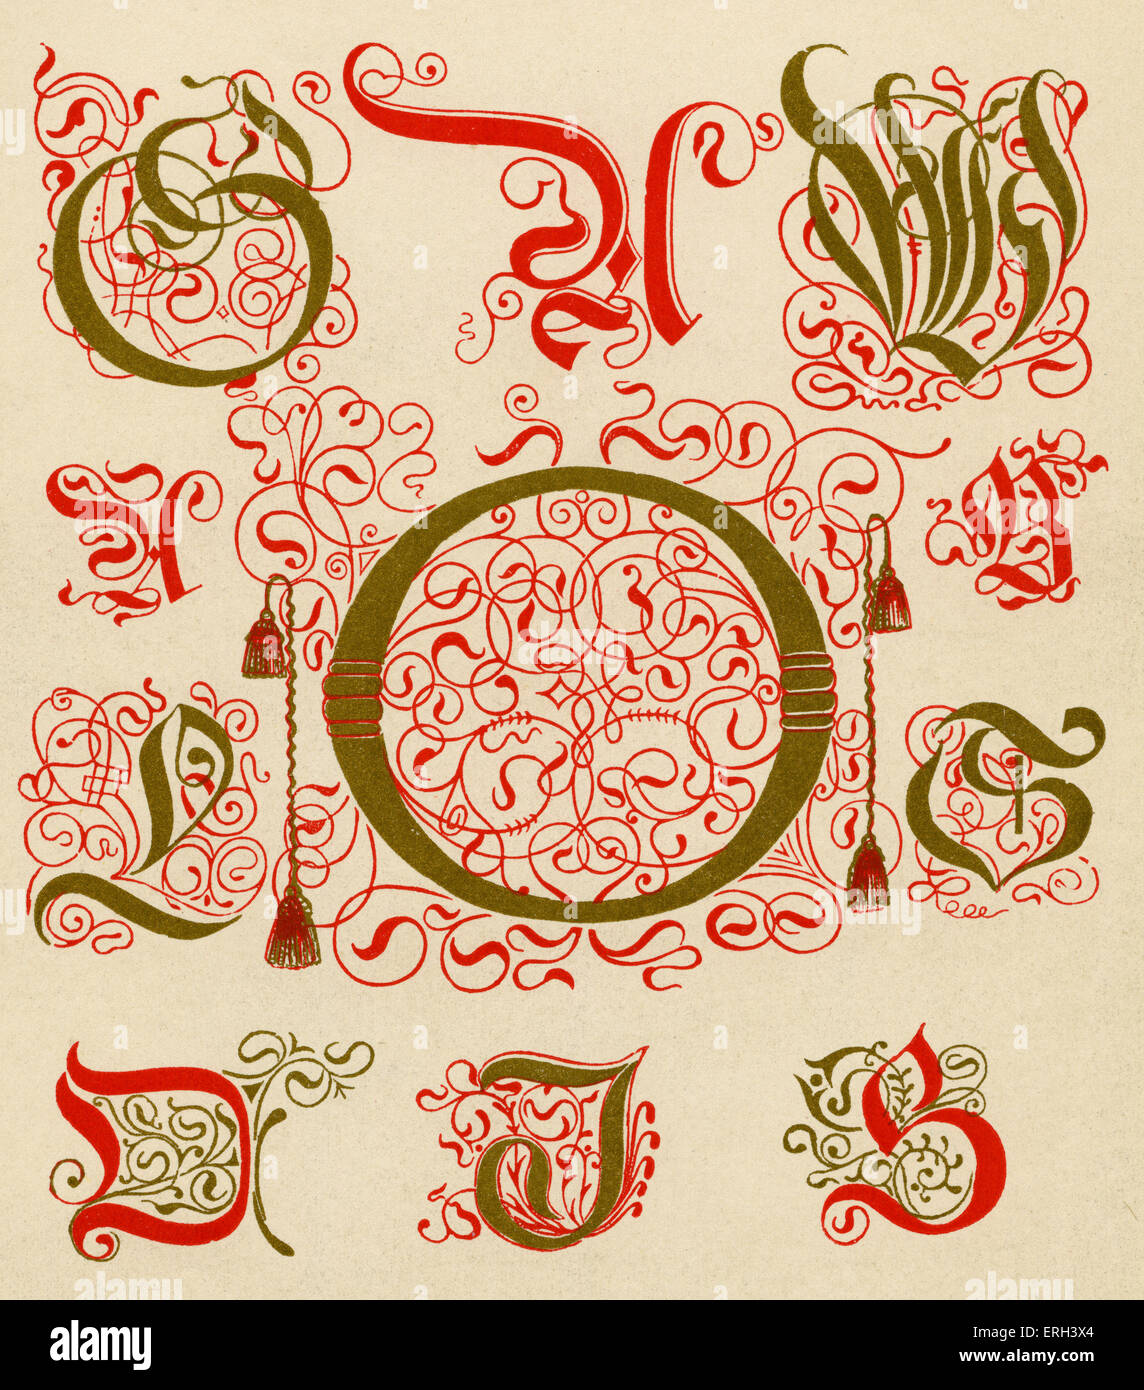 Sixteenth-century illuminated letters. The originals are from a printed book from Basle. (1886 source). - Stock Image